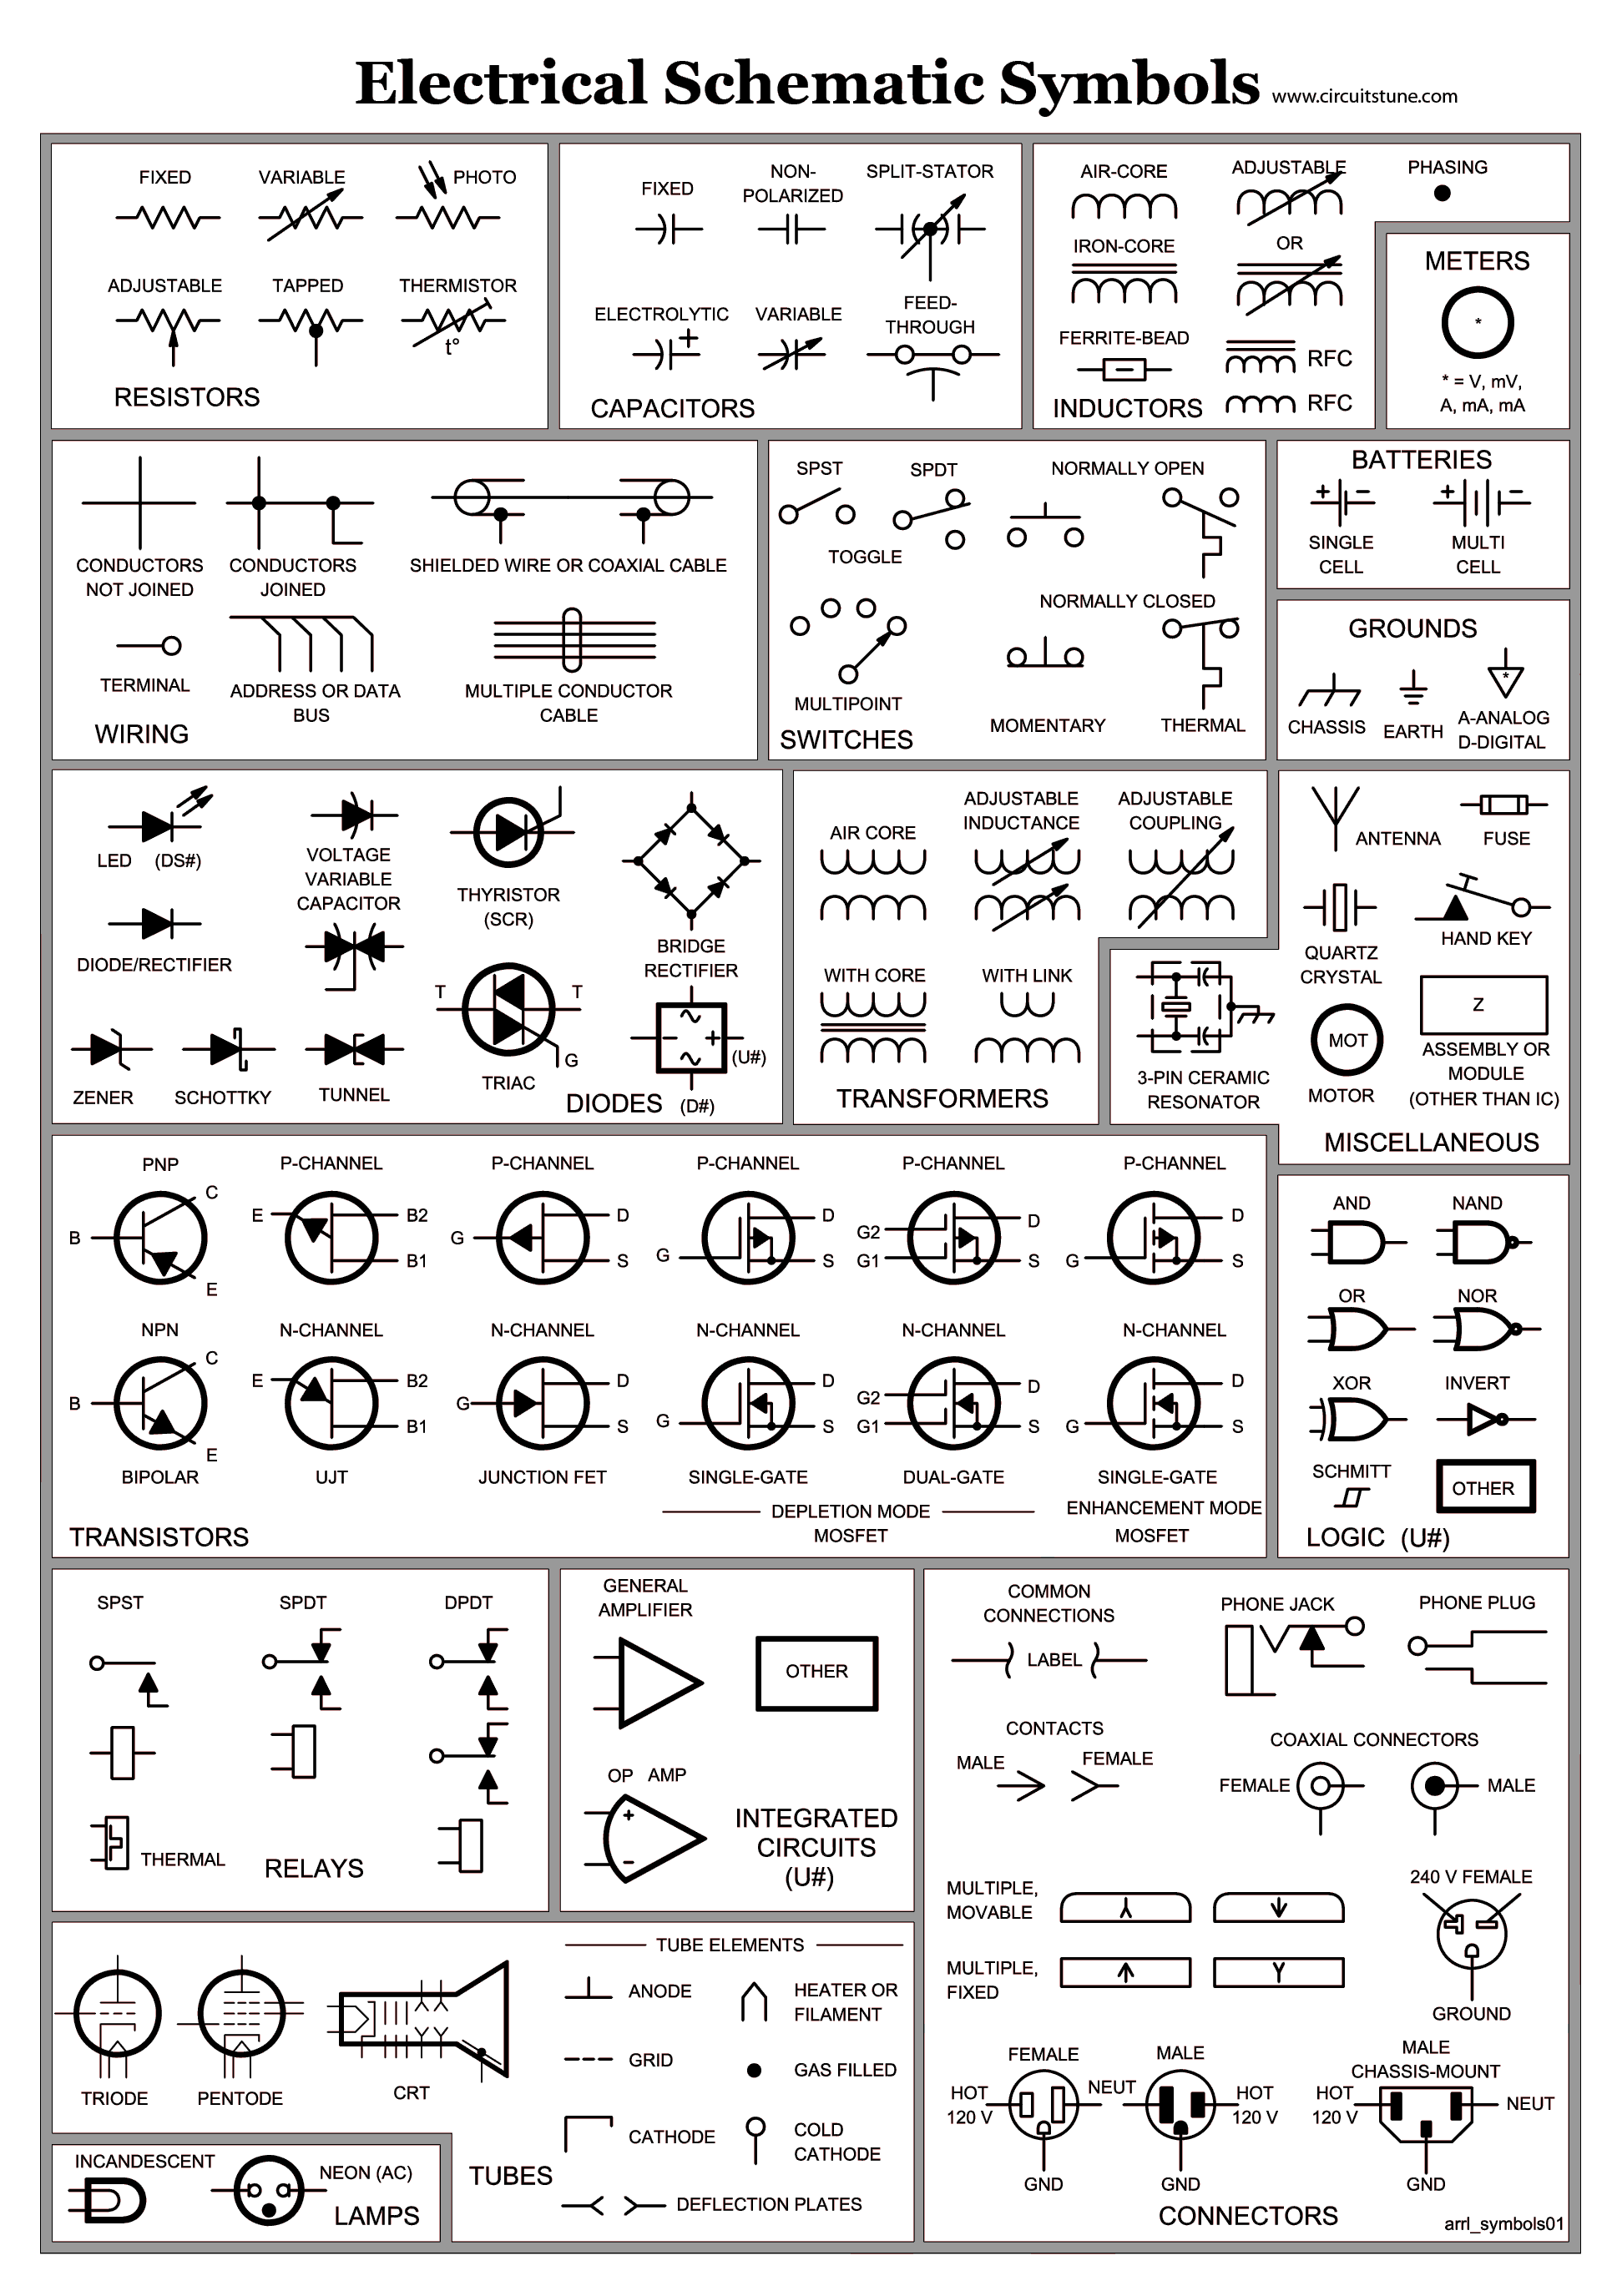 electrical schematic symbols wire diagram symbols automotive wiring rh pinterest com house wiring diagram symbols electrical house wiring symbols